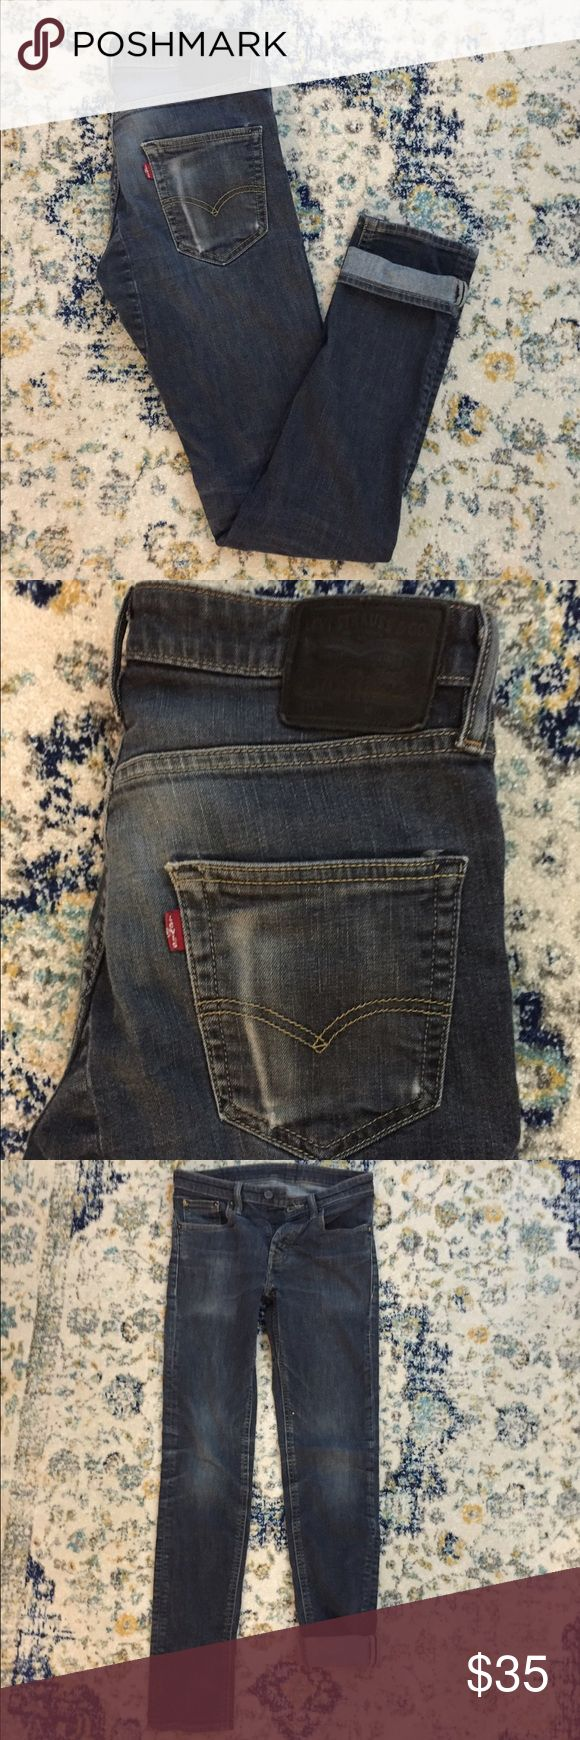 Levi jeans Men's Levi 511 jeans but I like to call them unisex cause they could worn by either. Super cute boyfriend style for the ladies! The size on tag is 30x34 I'm a size 27 and these fit me(for reference) great condition. Urban Outfitters Jeans Boyfriend